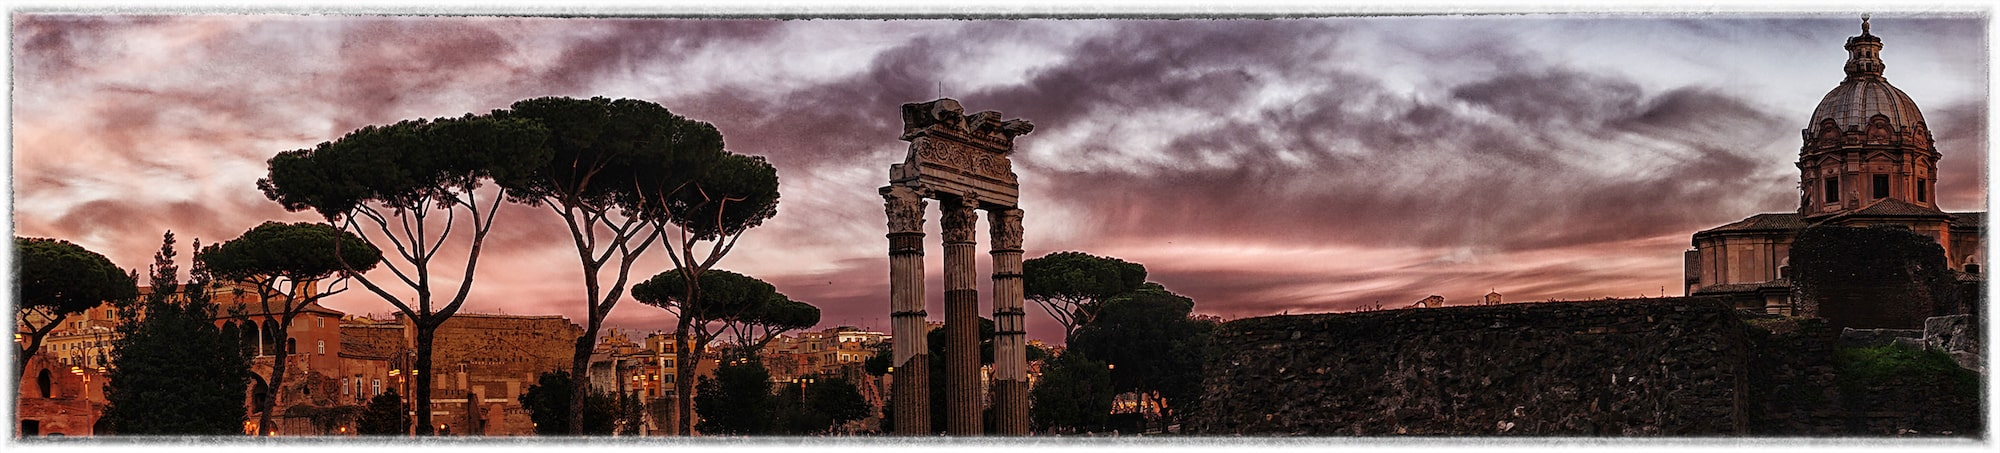 dilian markov sony alpha 7II foro di cesare in rome panoramic at sunset